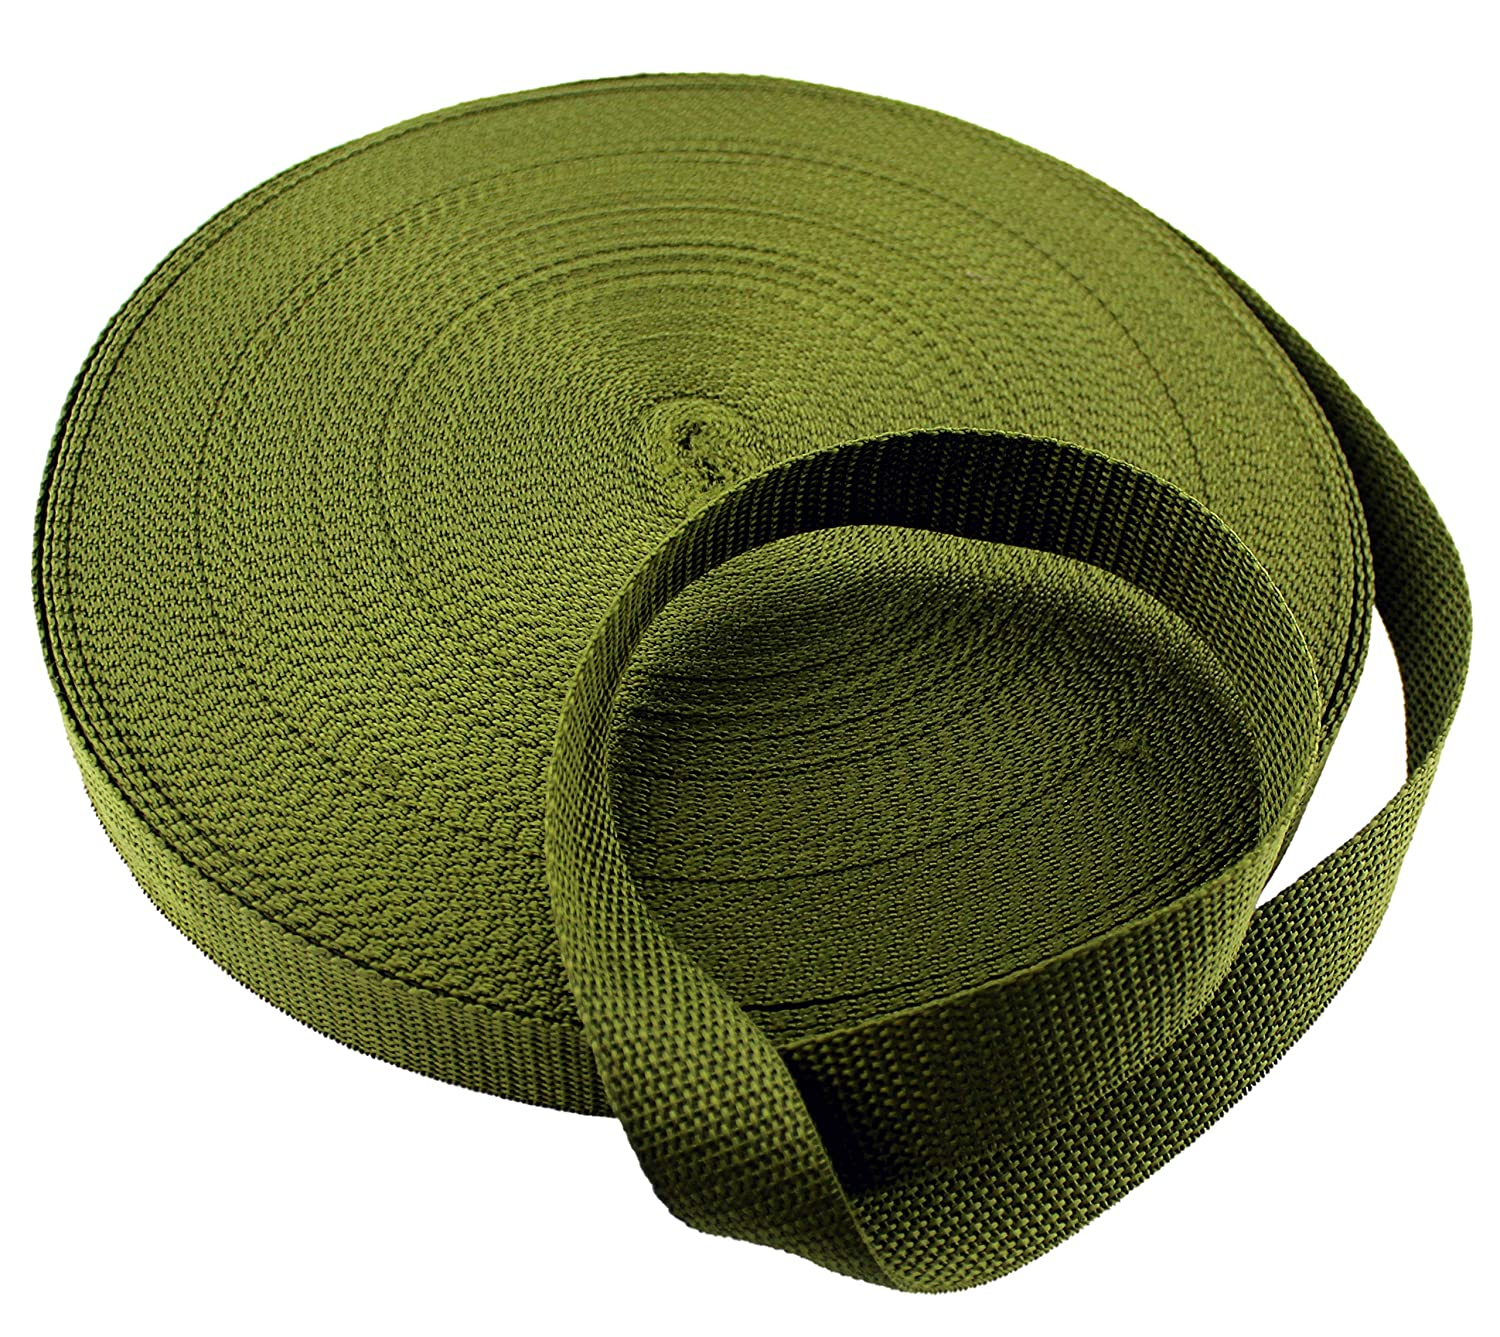 """White Polypropylene Webbing 50 Yards x 1-inch; 1"""" Wide Polypro Strap Webbing; Great for Bags, Outdoor Gear; Collars, Leashes, Halters, Sporting Gear & More Cornucopia Brands 4336912894"""